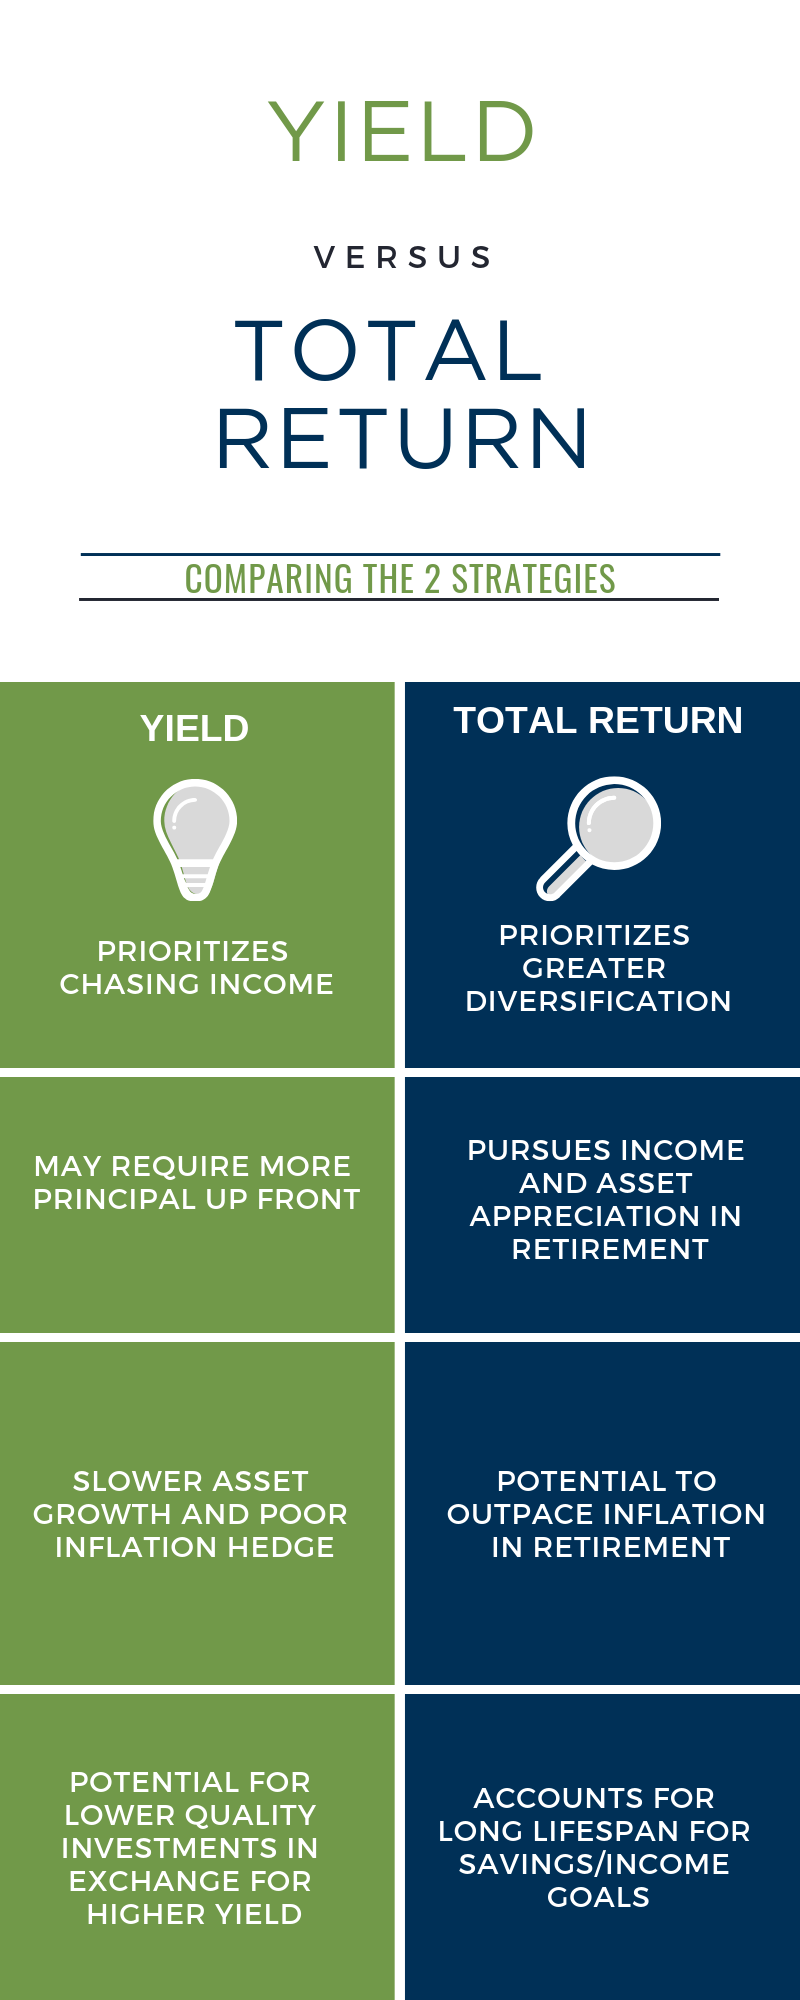 Comparing yield and total return strategies.